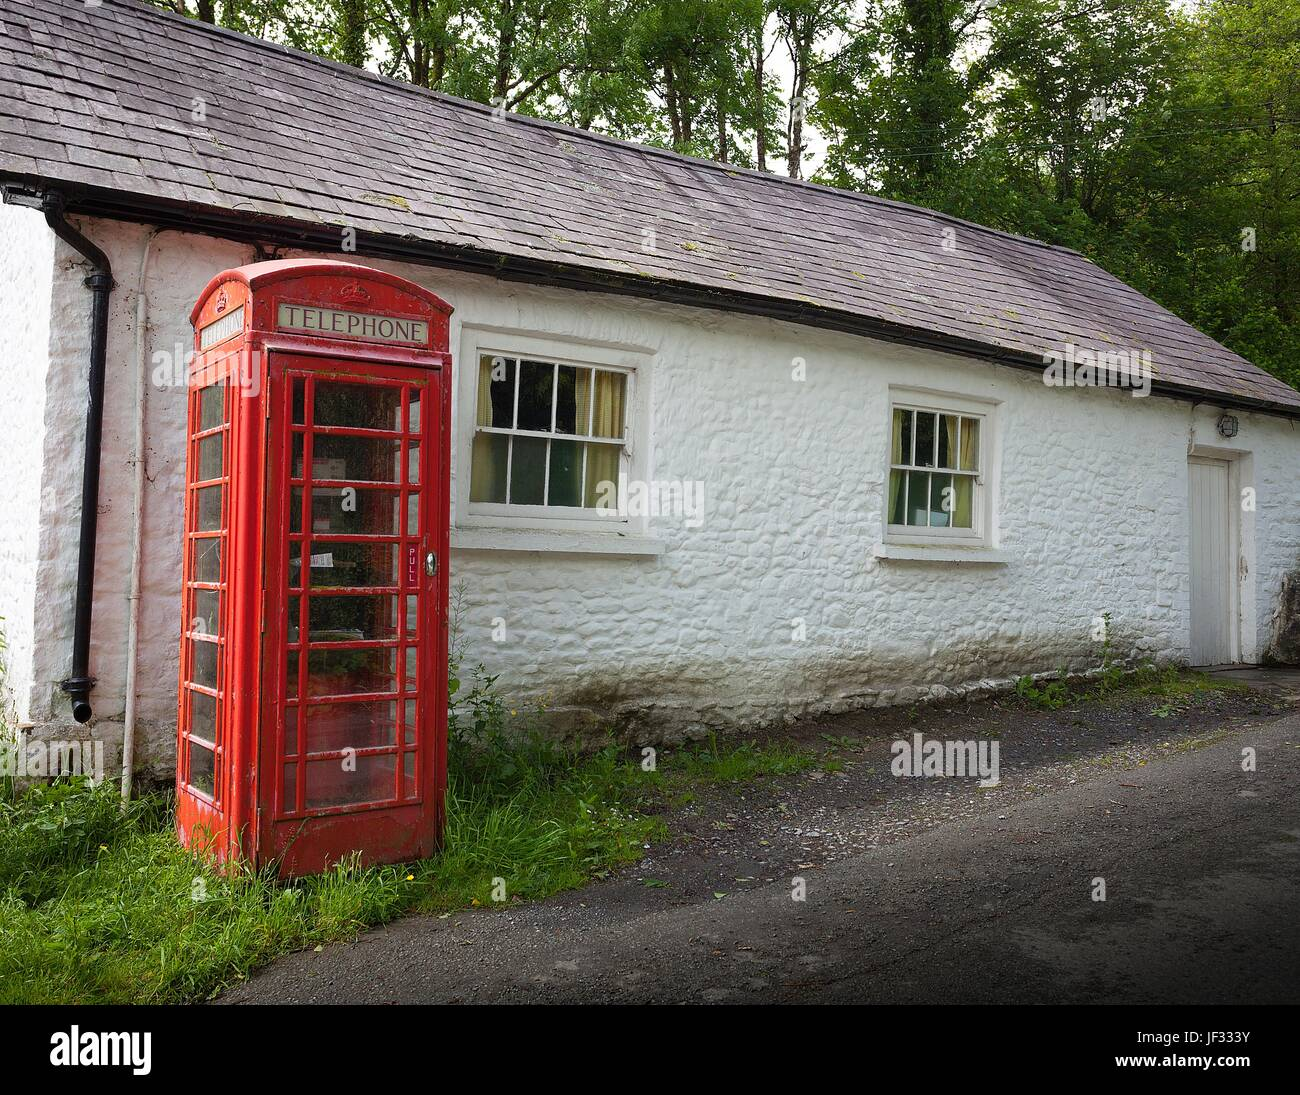 An old British phone box and a white washed building - Stock Image